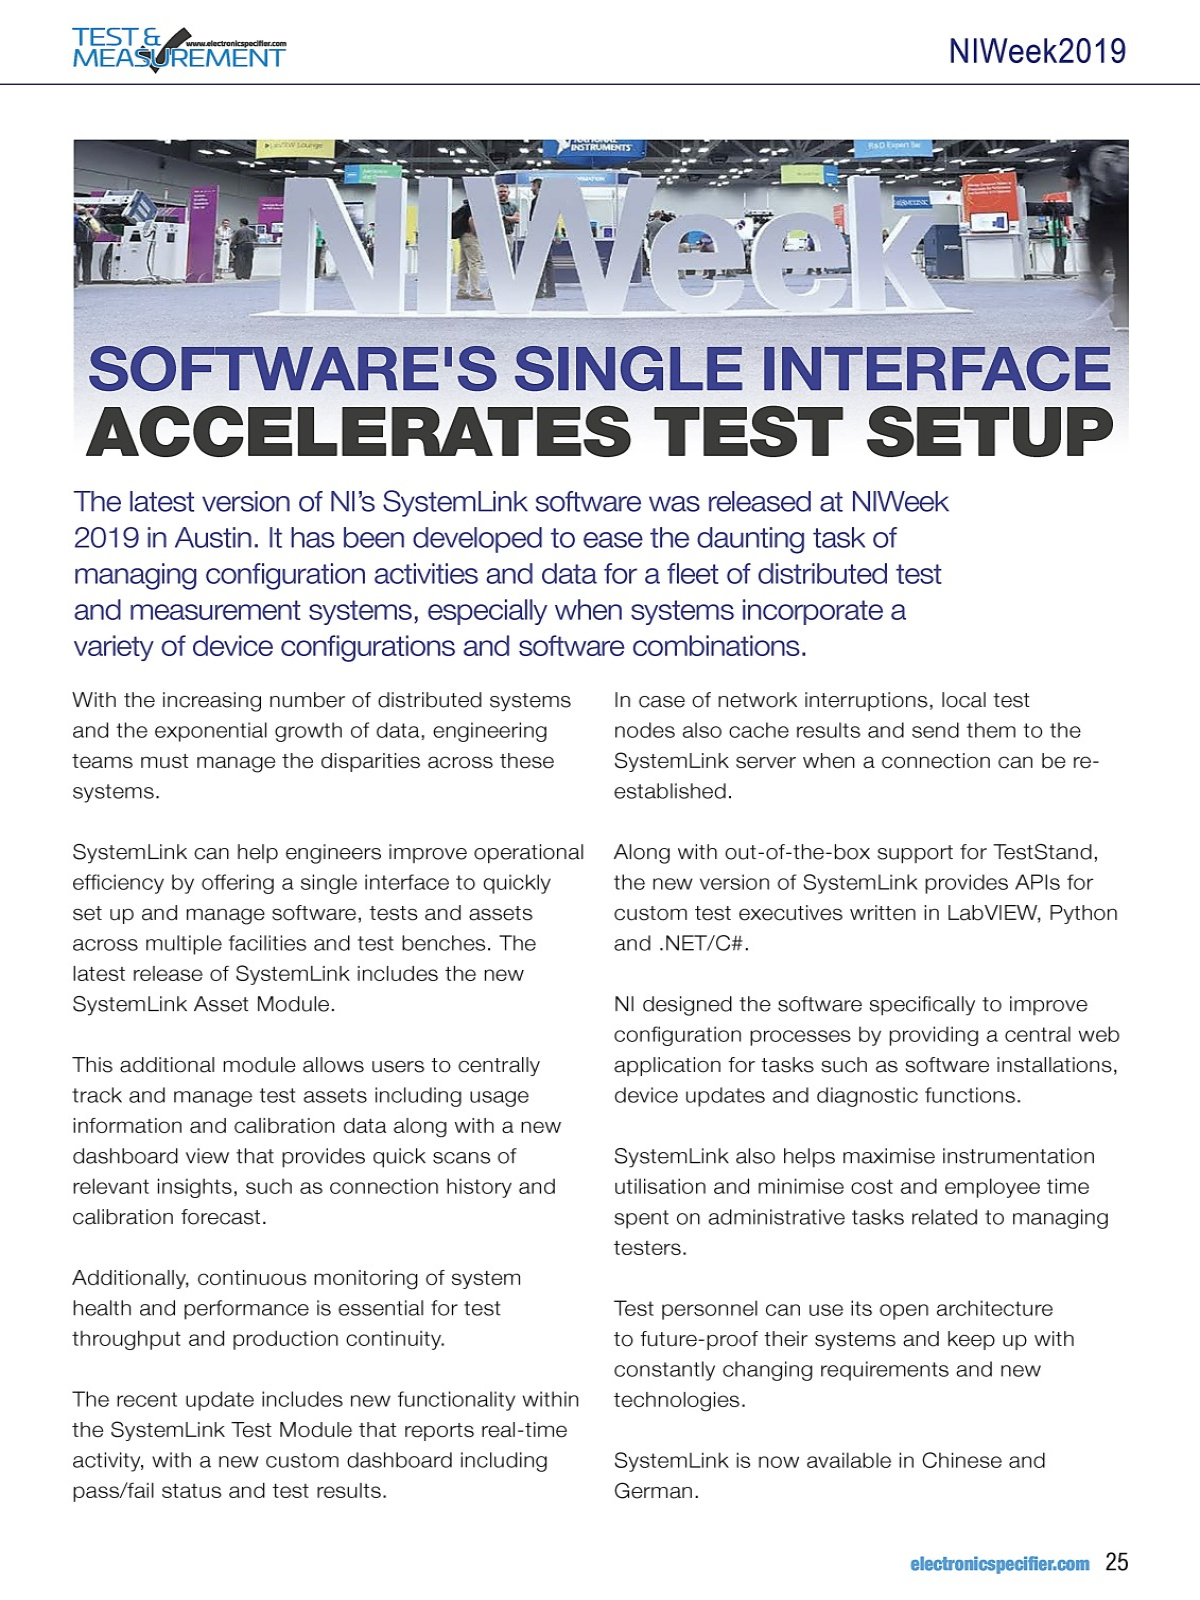 MYEBOOK - Test and measurement Issue 2 2019 Sensor+Test Supplement